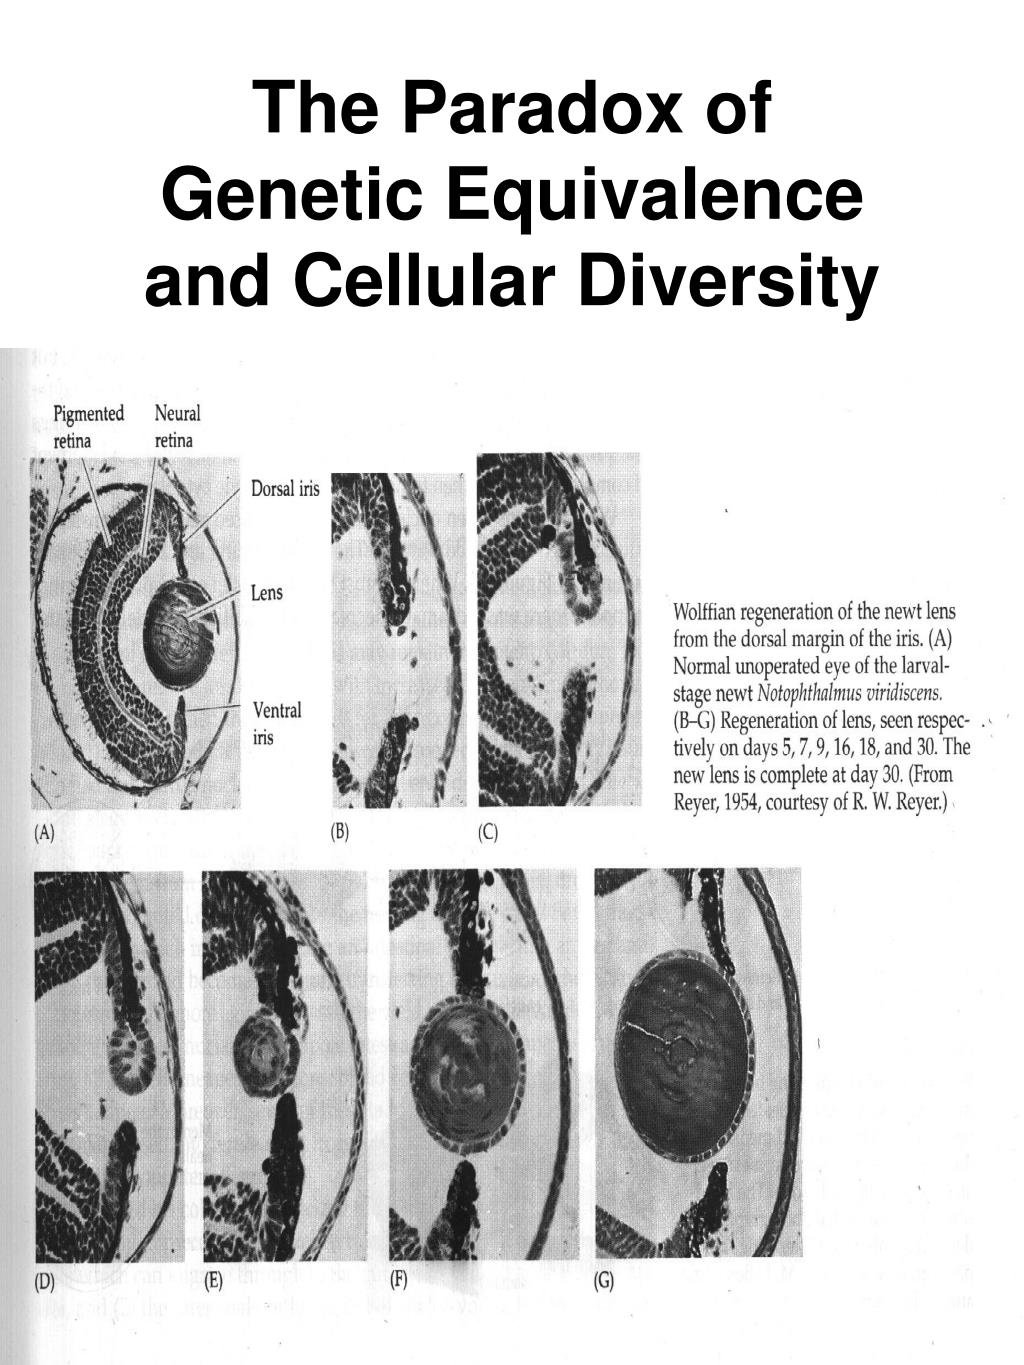 The Paradox of Genetic Equivalence and Cellular Diversity